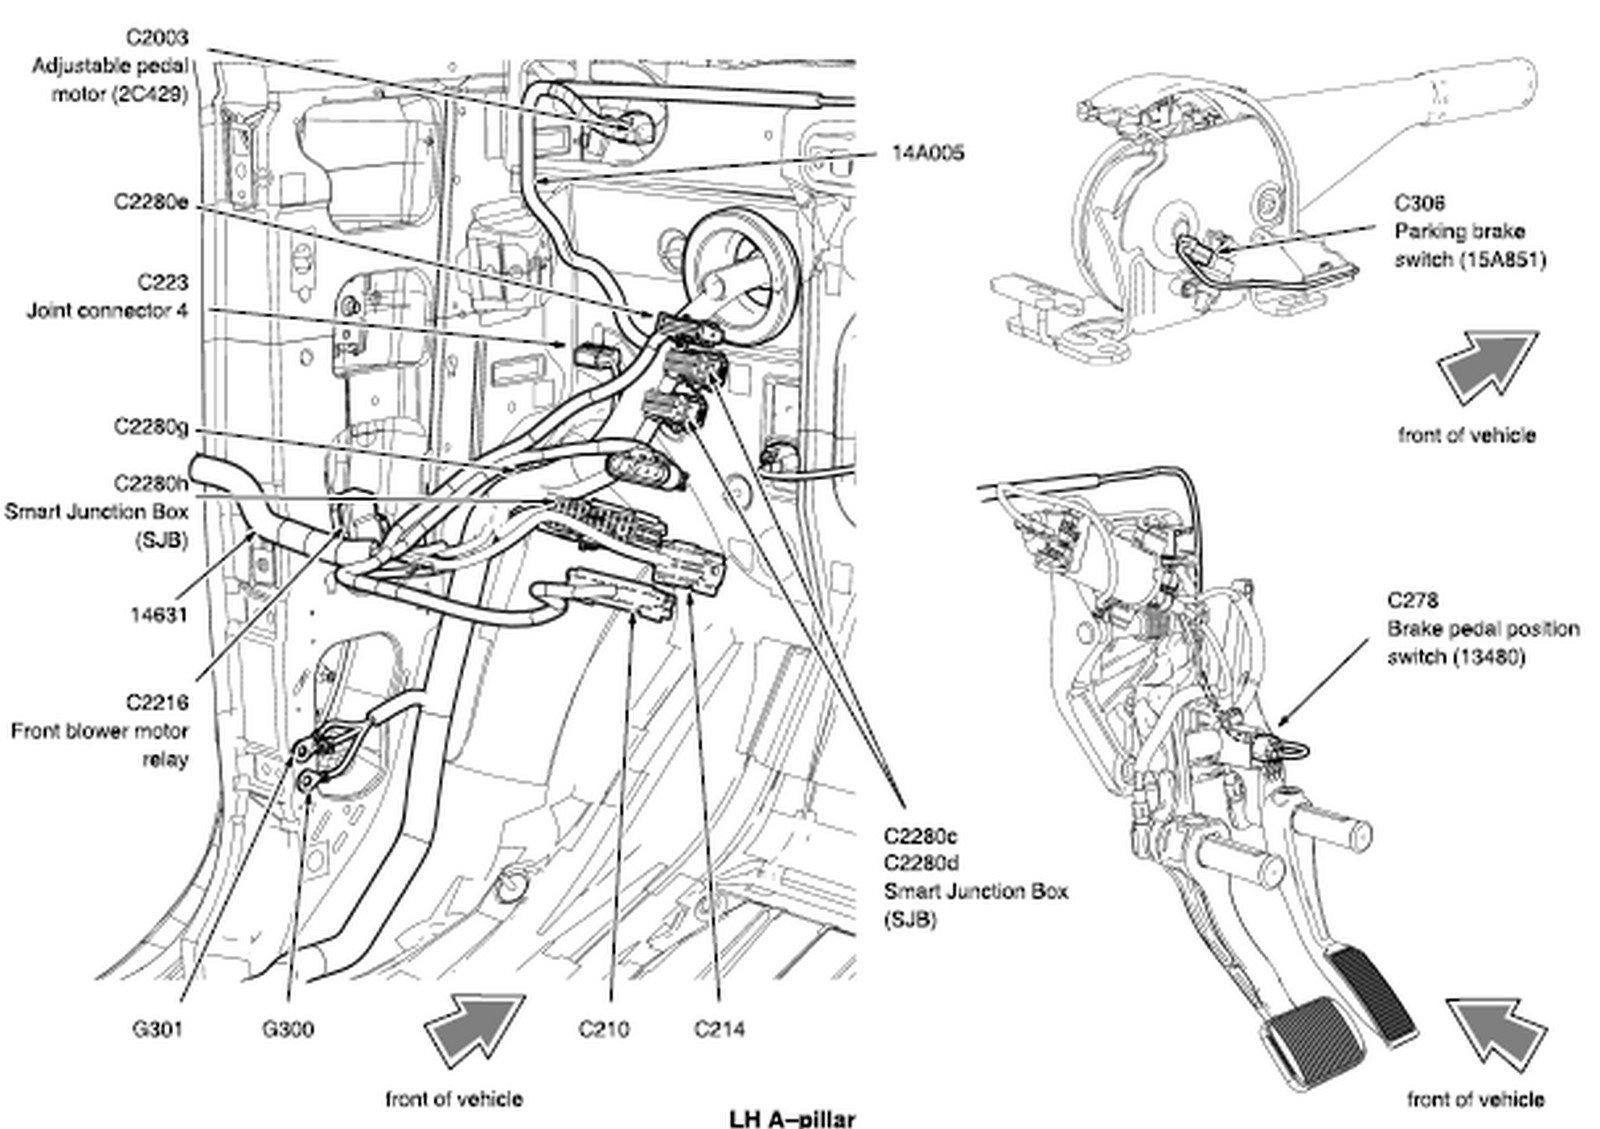 2006 Ford Freestyle Fuse Box Location Wiring Diagram News \u2022 1991 Ford  F150 Fuse Box Location 2005 Ford Freestyle Fuse Box Location